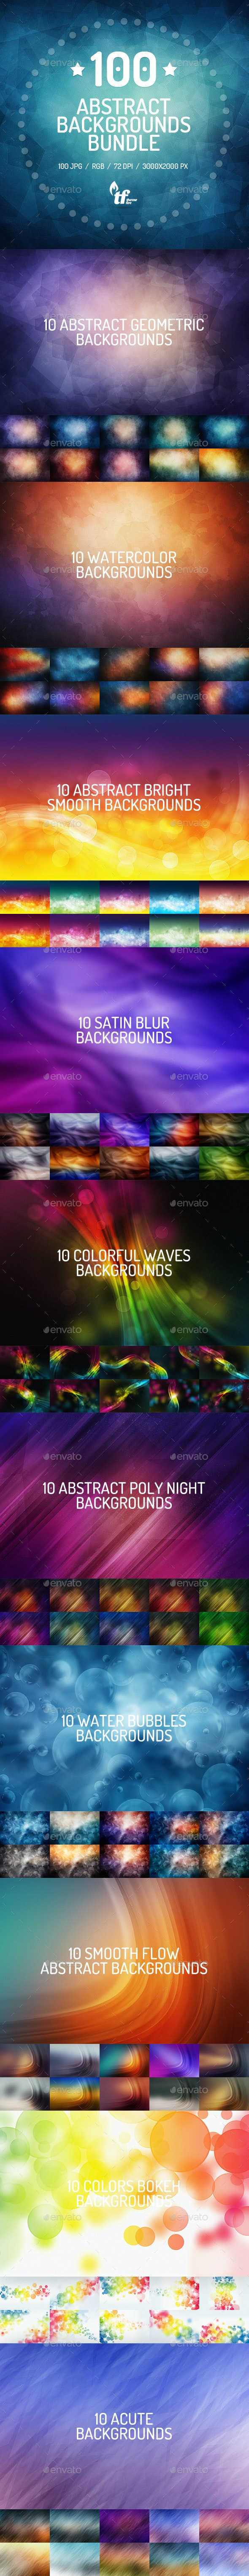 100 Abstract Backgrounds Bundle - Backgrounds Graphics